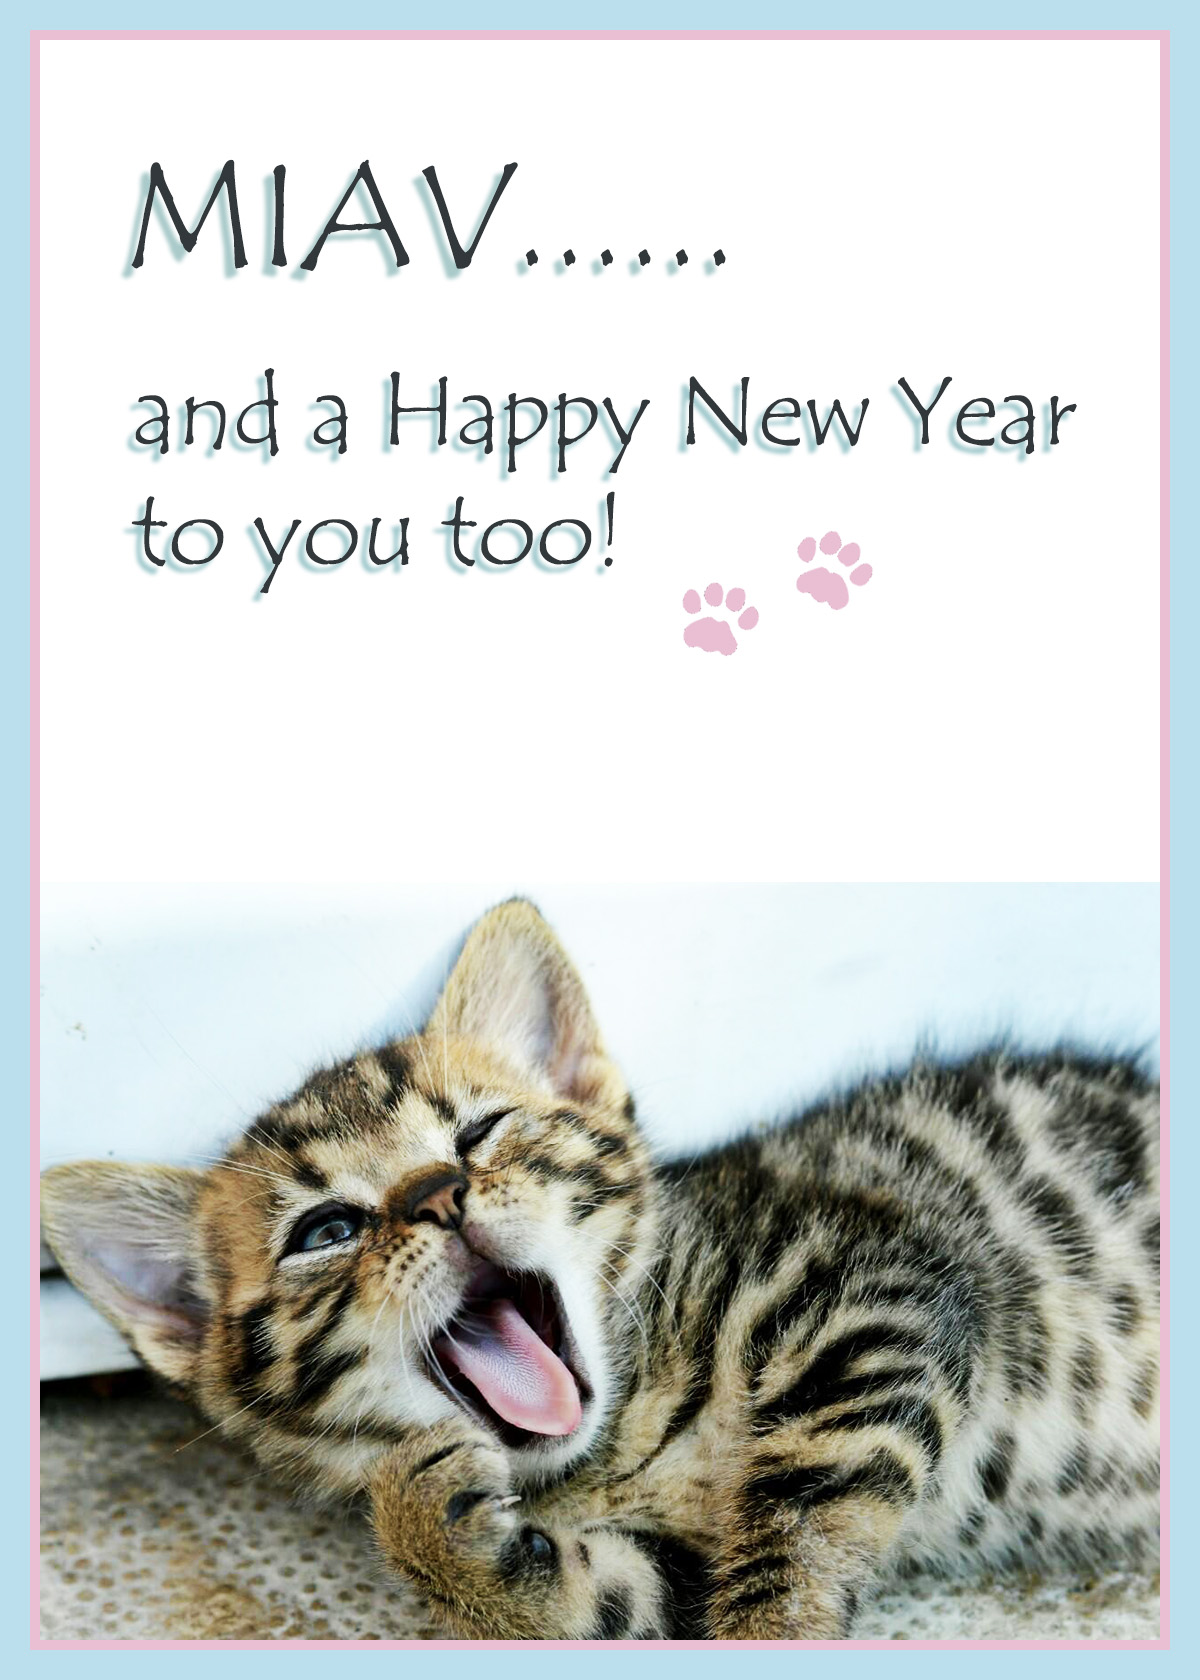 Sleepy kitten wishing you a happy New Year